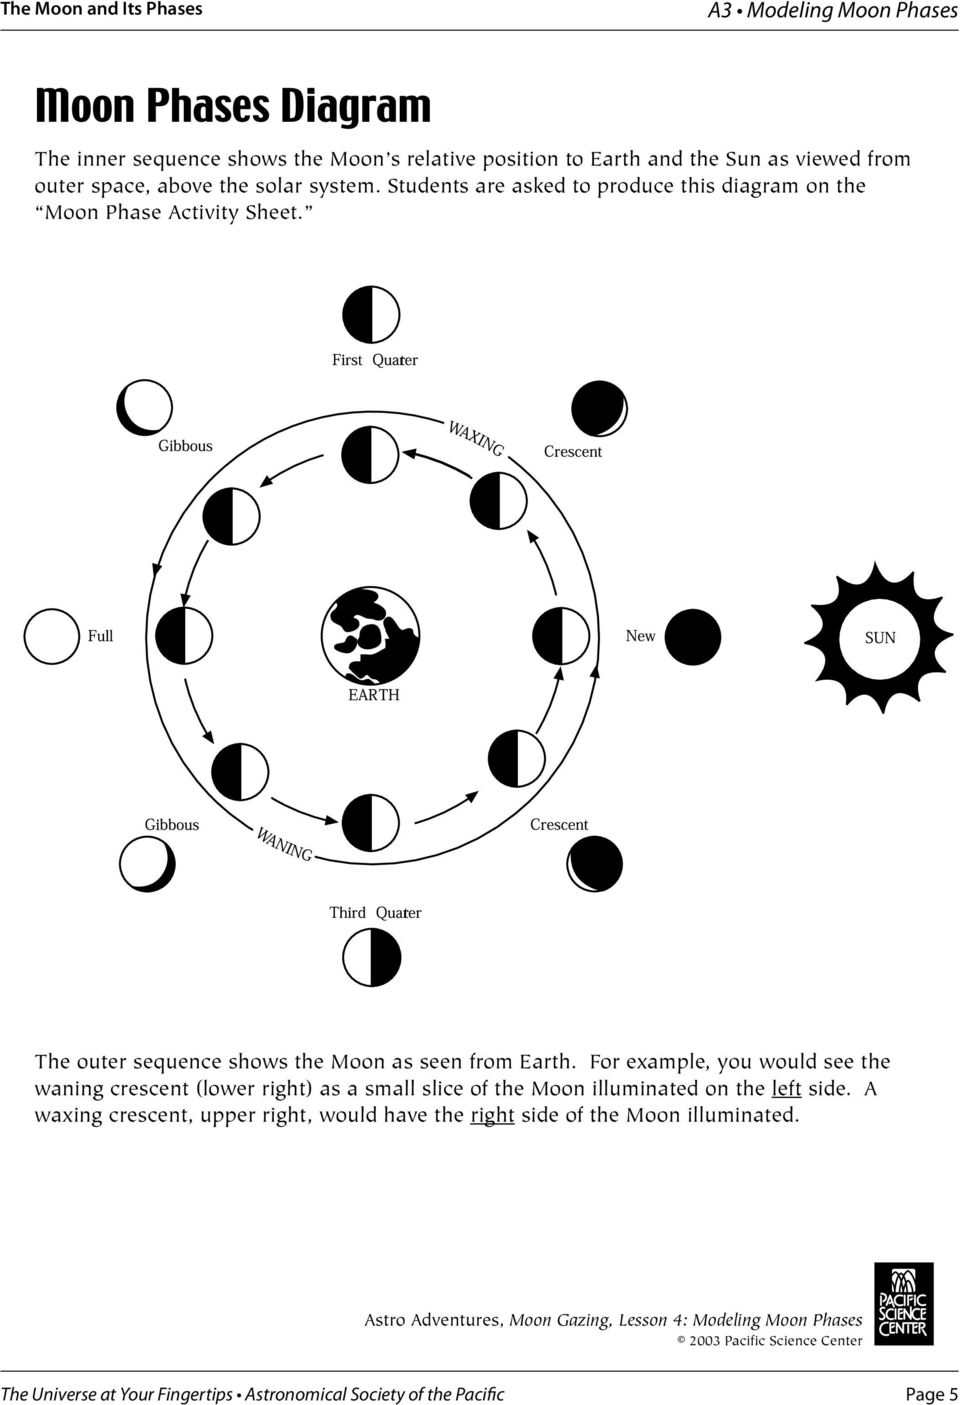 Modeling Moon Phases Activity A3 What S This About Lunar Diagram The Outer Sequence Shows As Seen From Earth